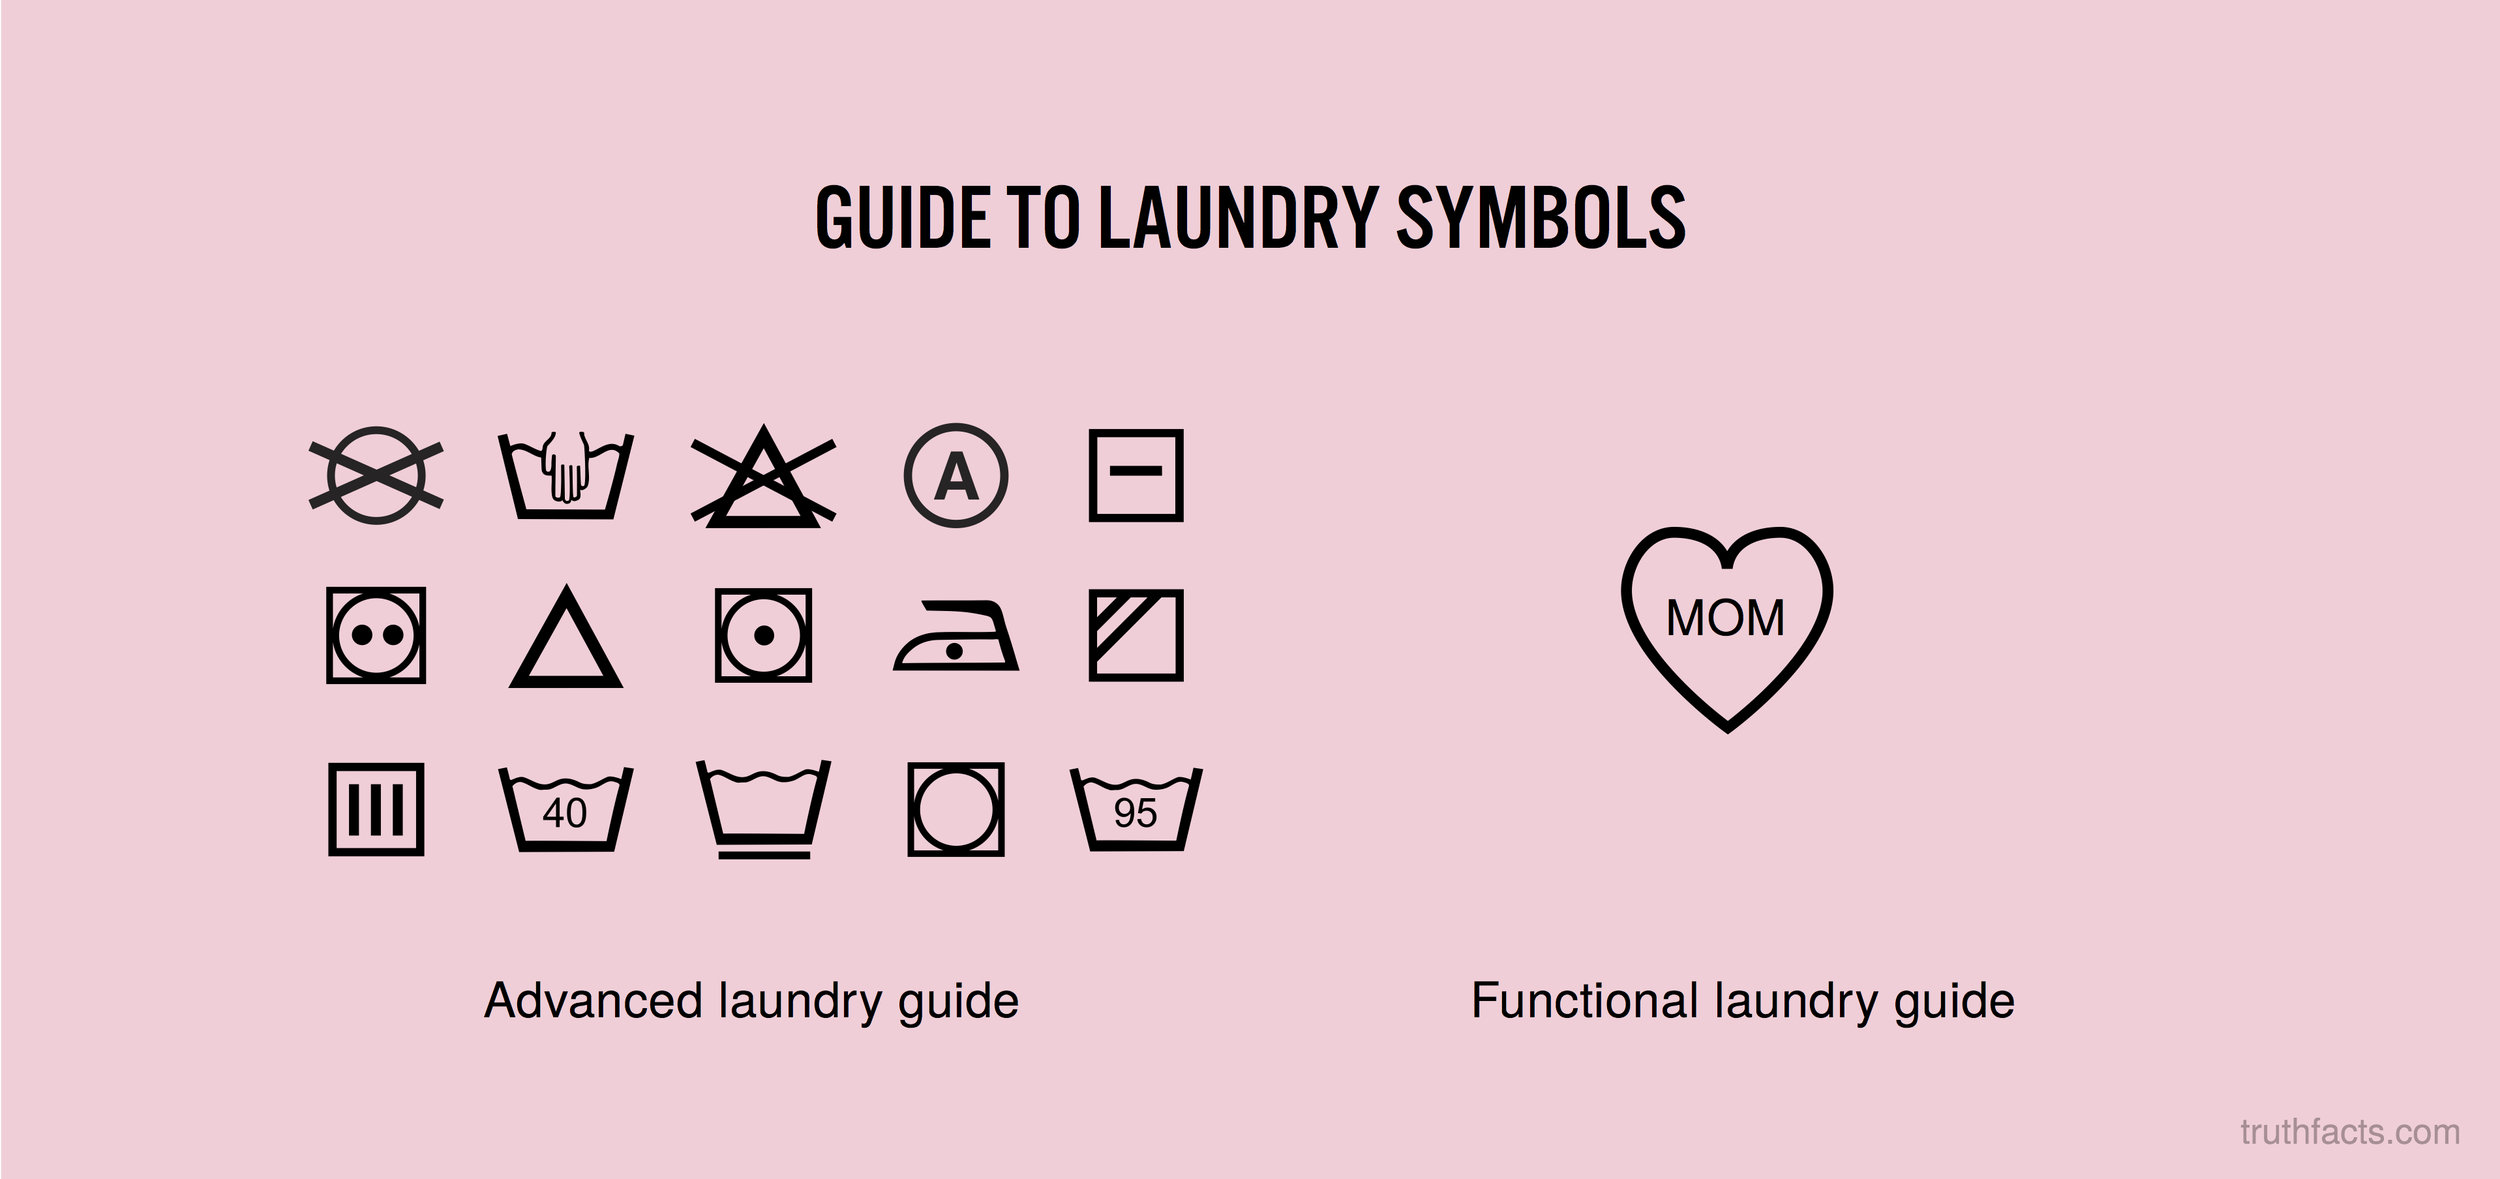 Guide to laundry symbols